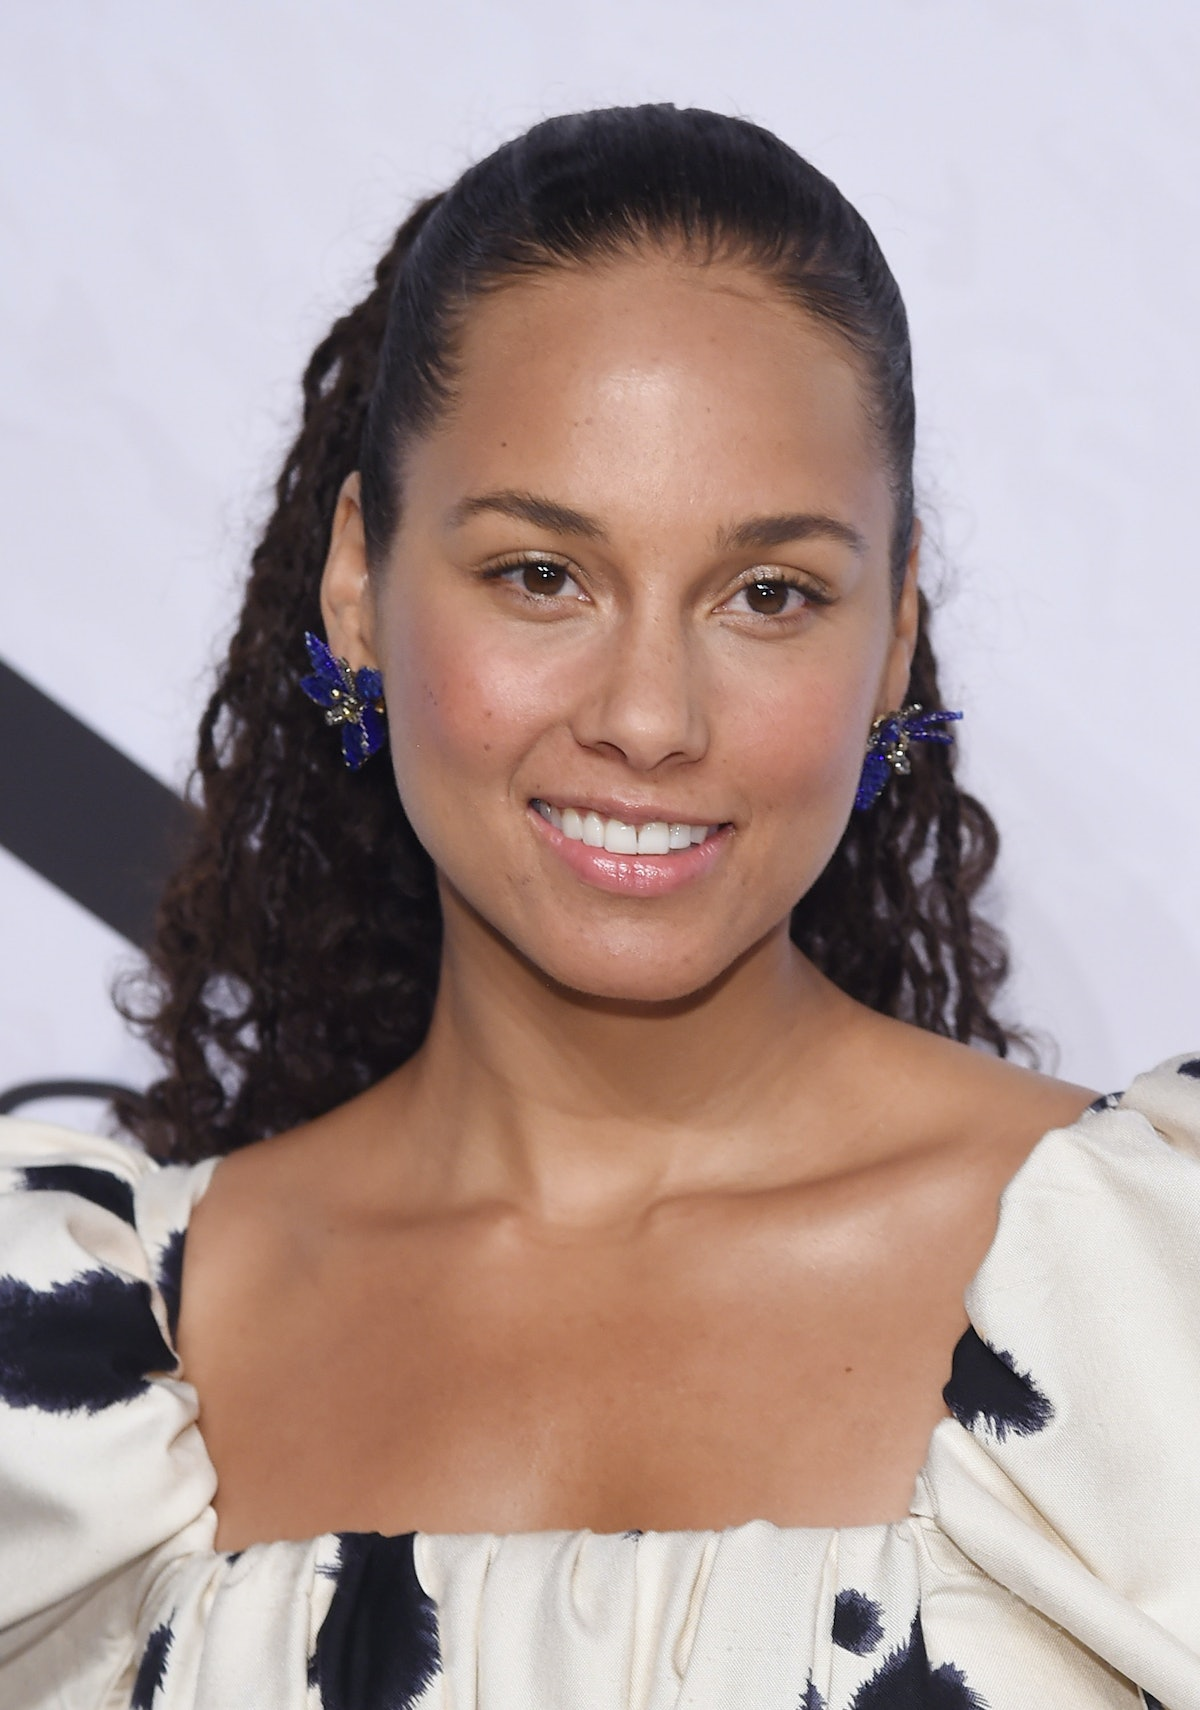 Who's Hosting The 2019 Grammys? Alicia Keys Is Planning A One Of A Kind Show